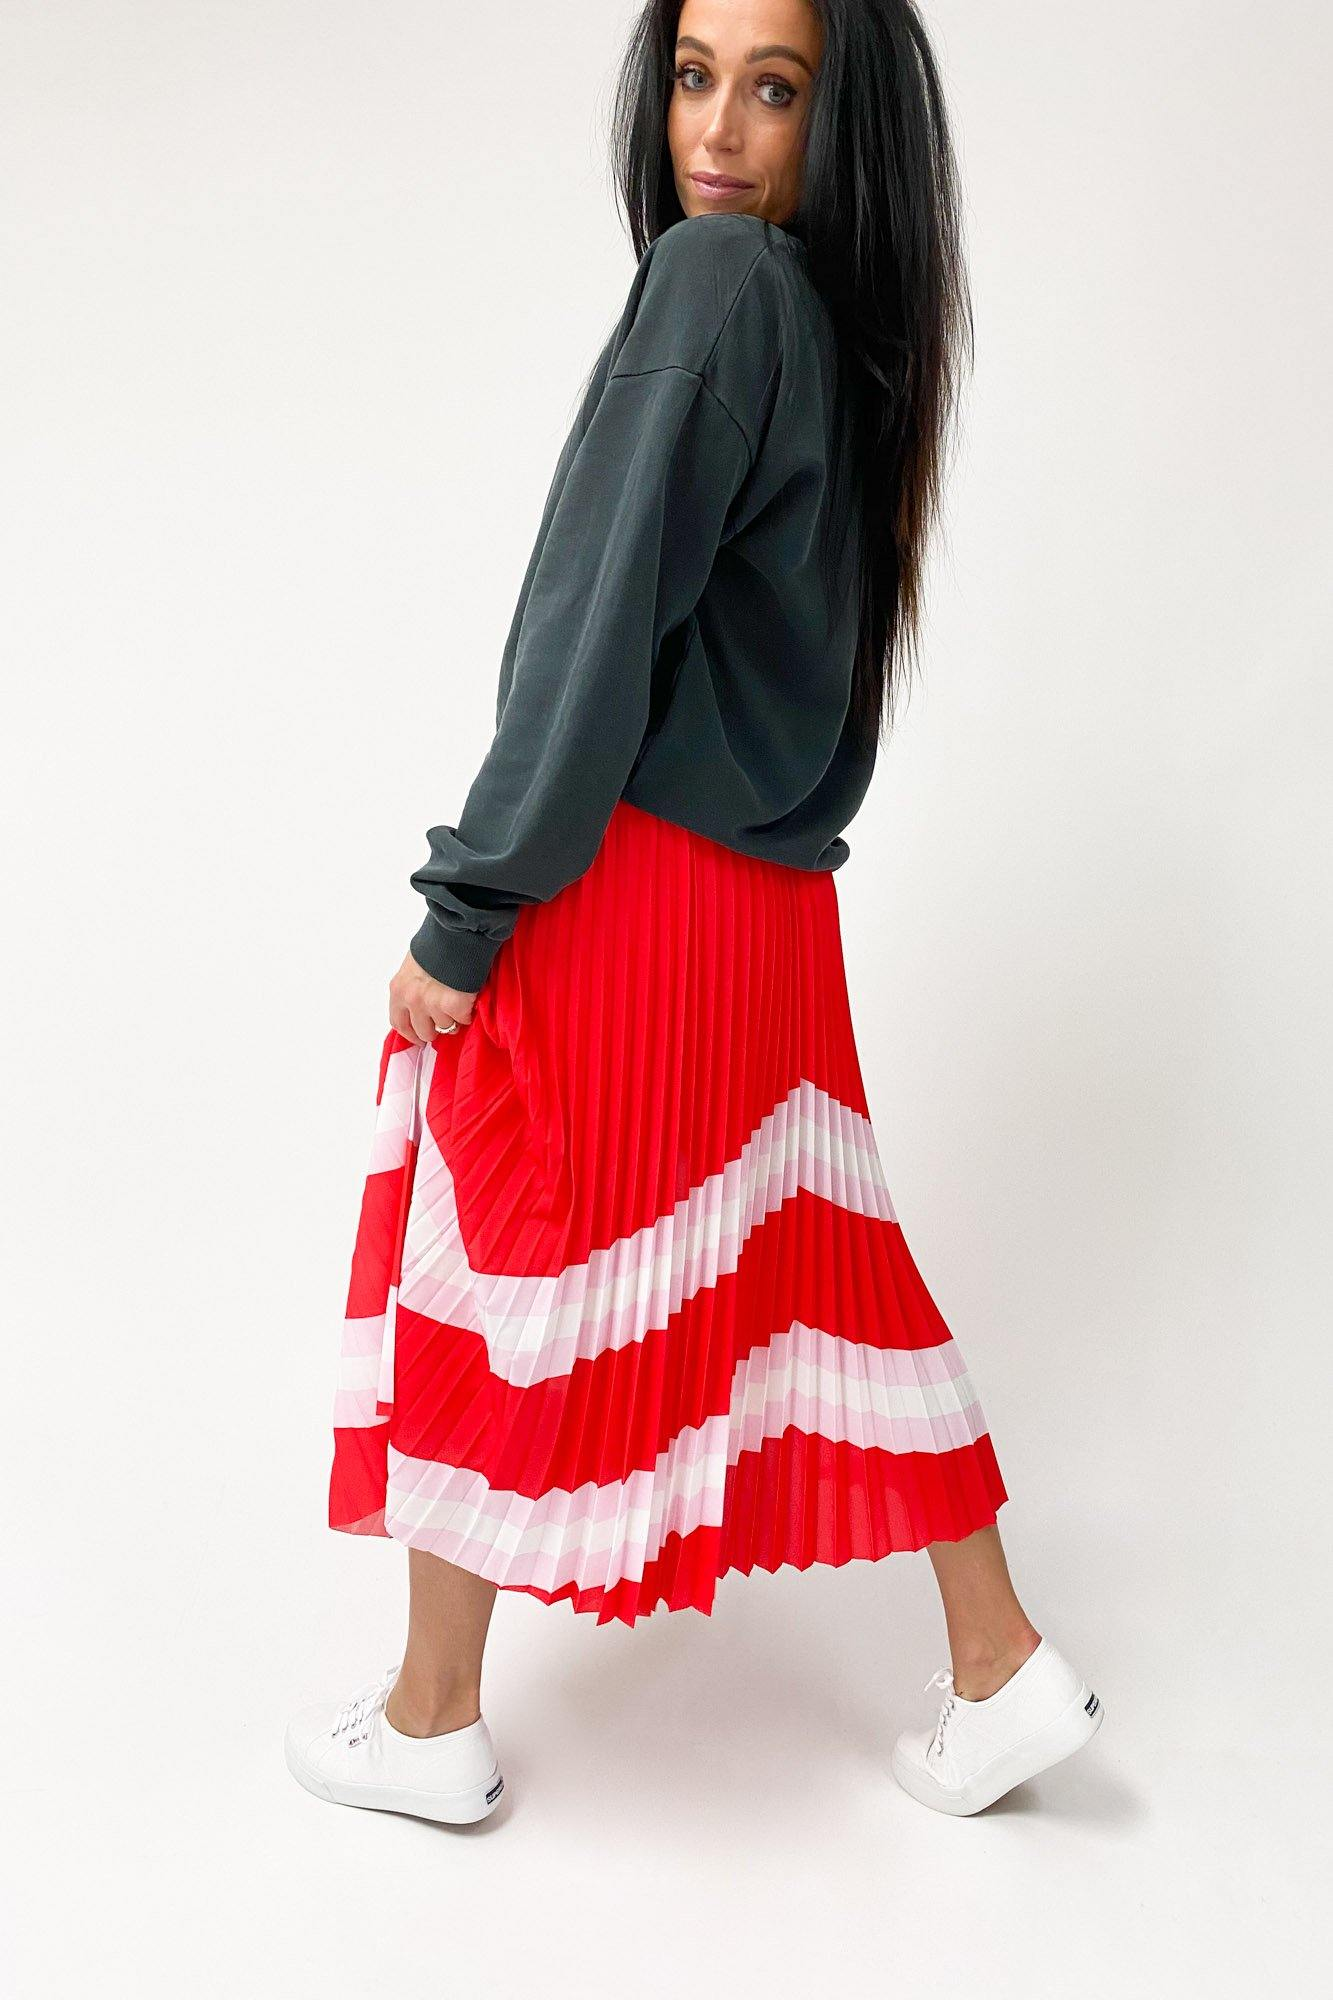 The Others The Sunray Skirt Red Pink White Horizon